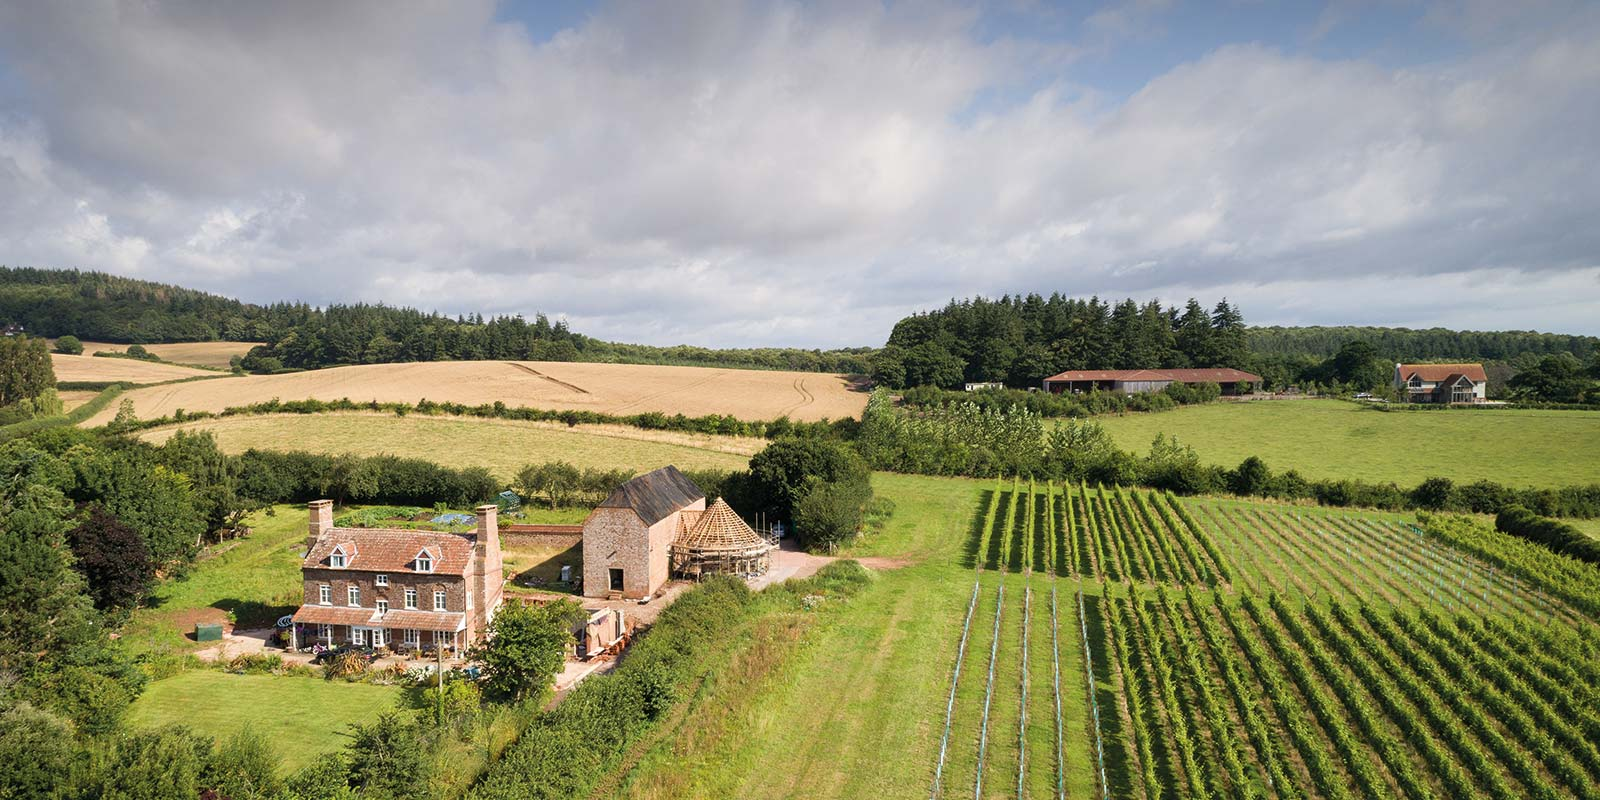 Aerial view of Brickhouse Vineyard taken when the renovation work was underway